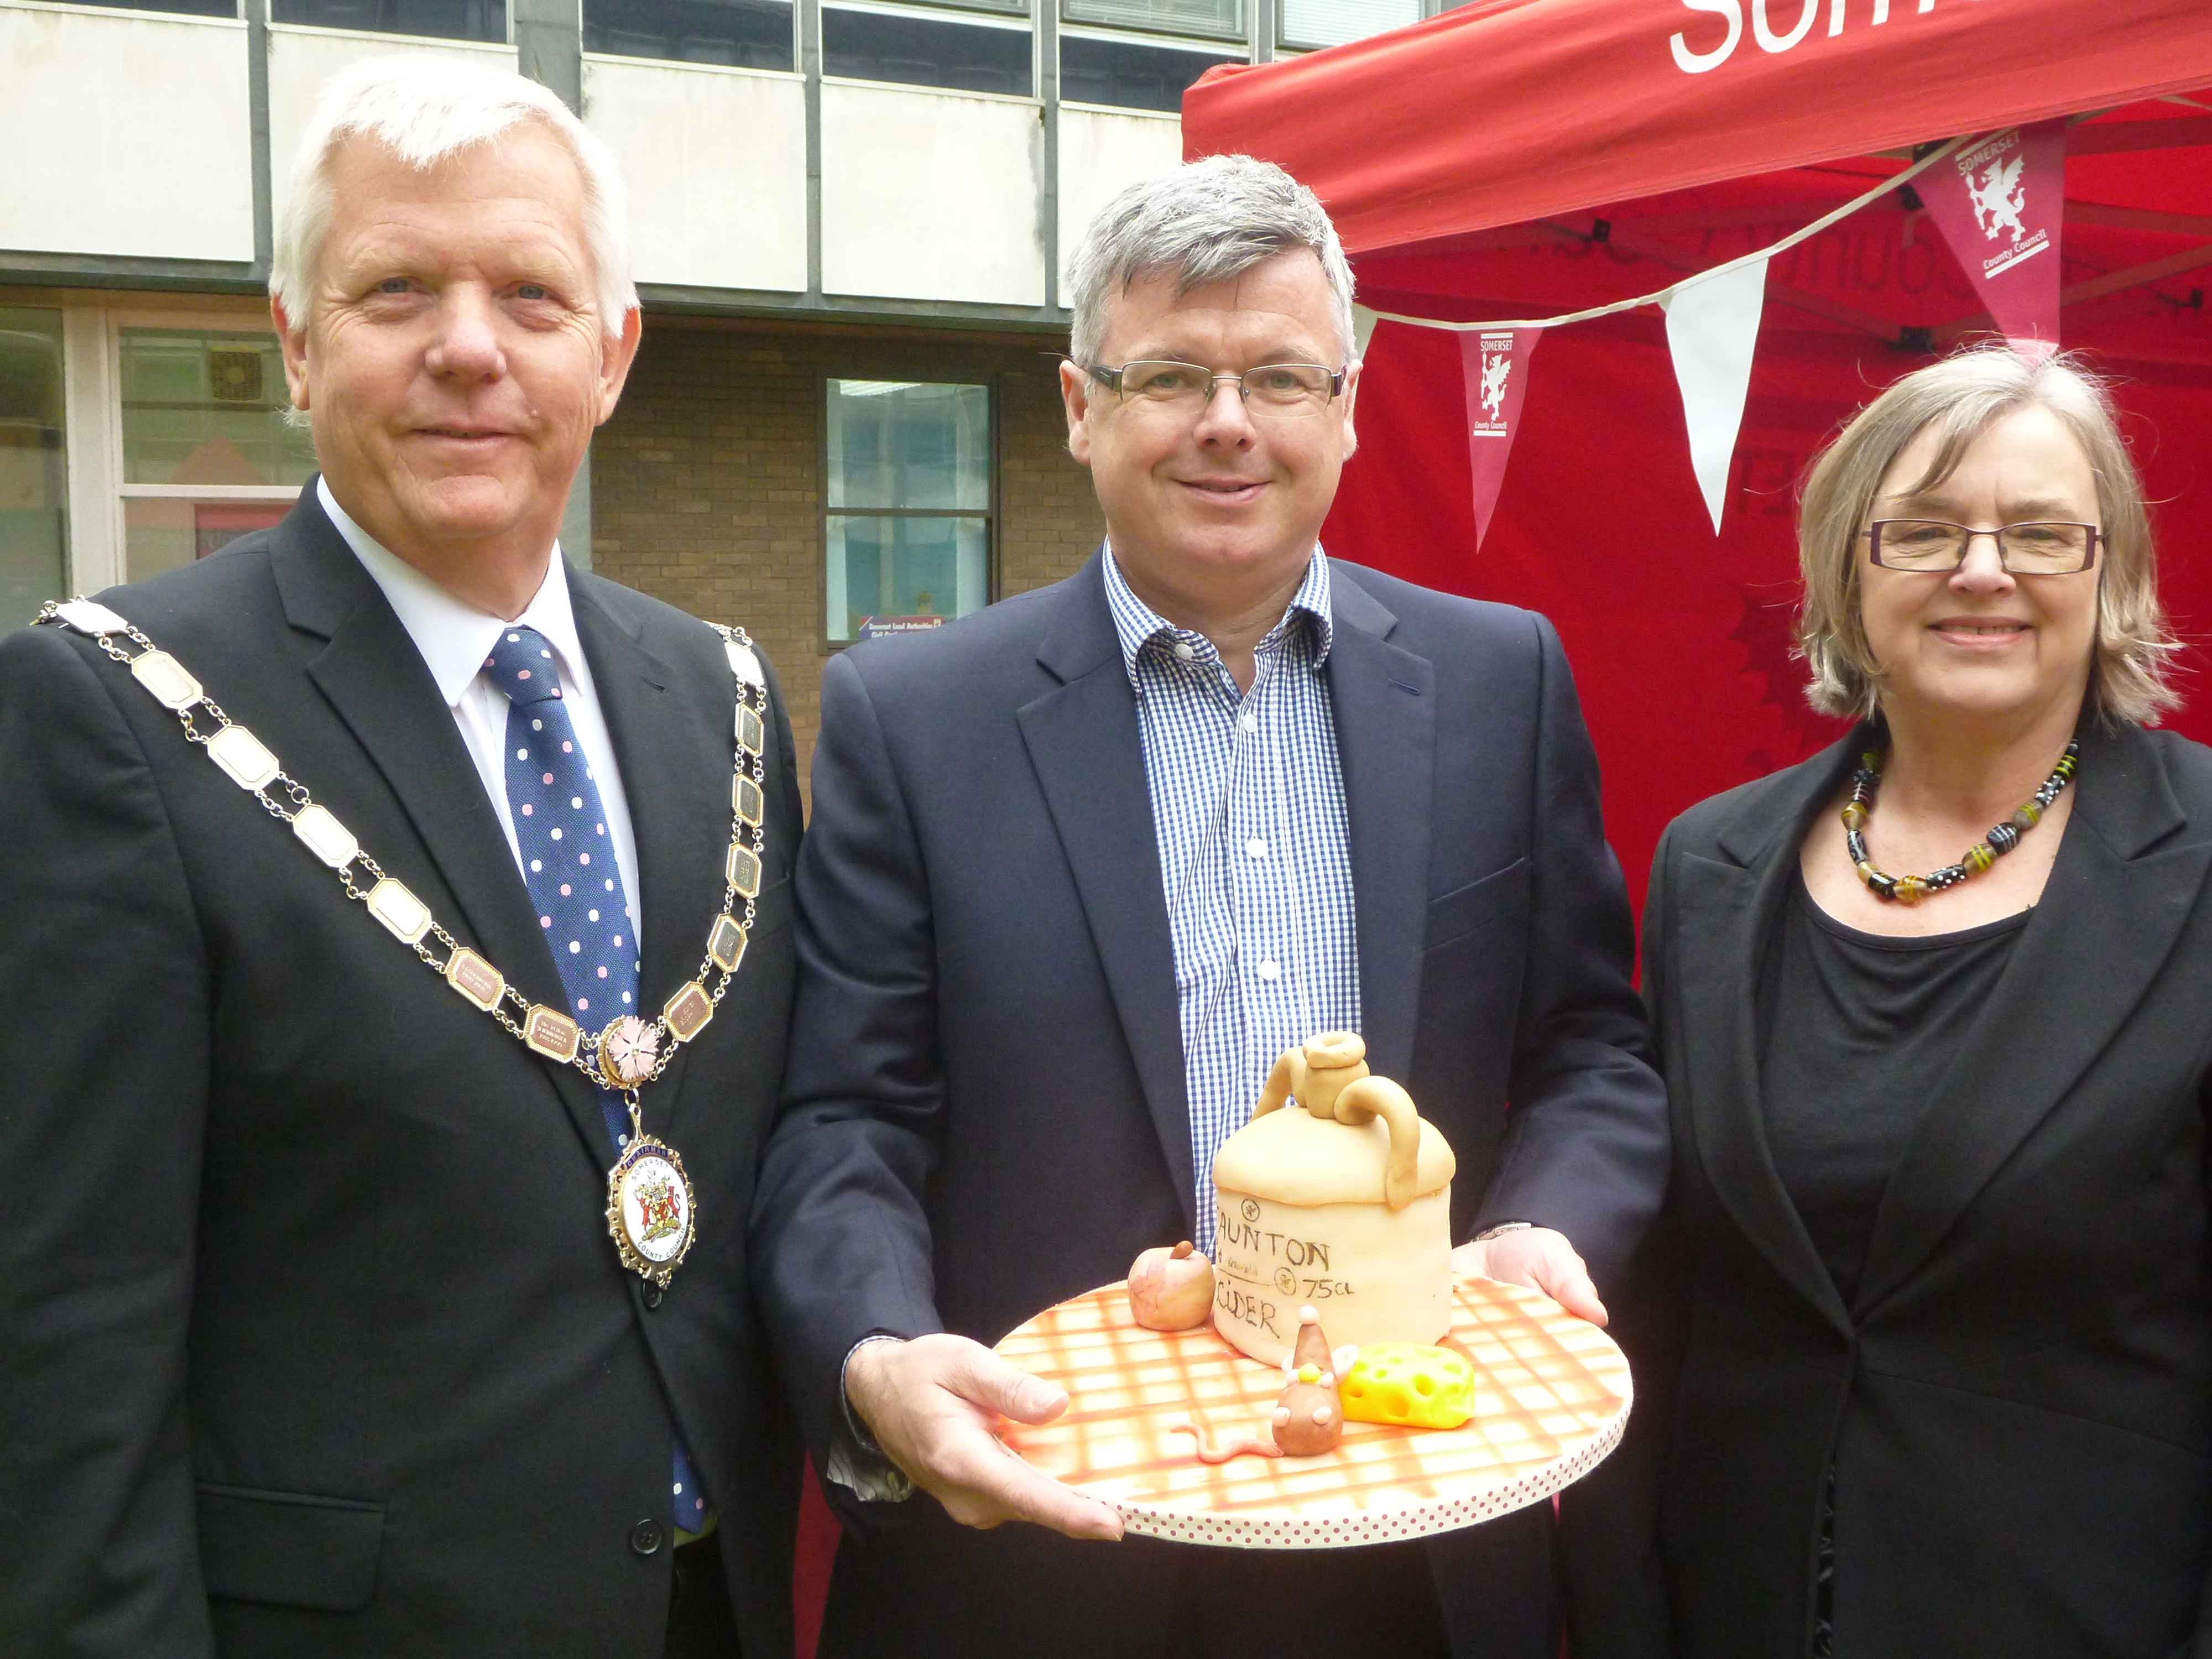 Judges Chairman David Fothergill, SCC Chief Executive Pat Flaherty and Cllr Christine Lawrence